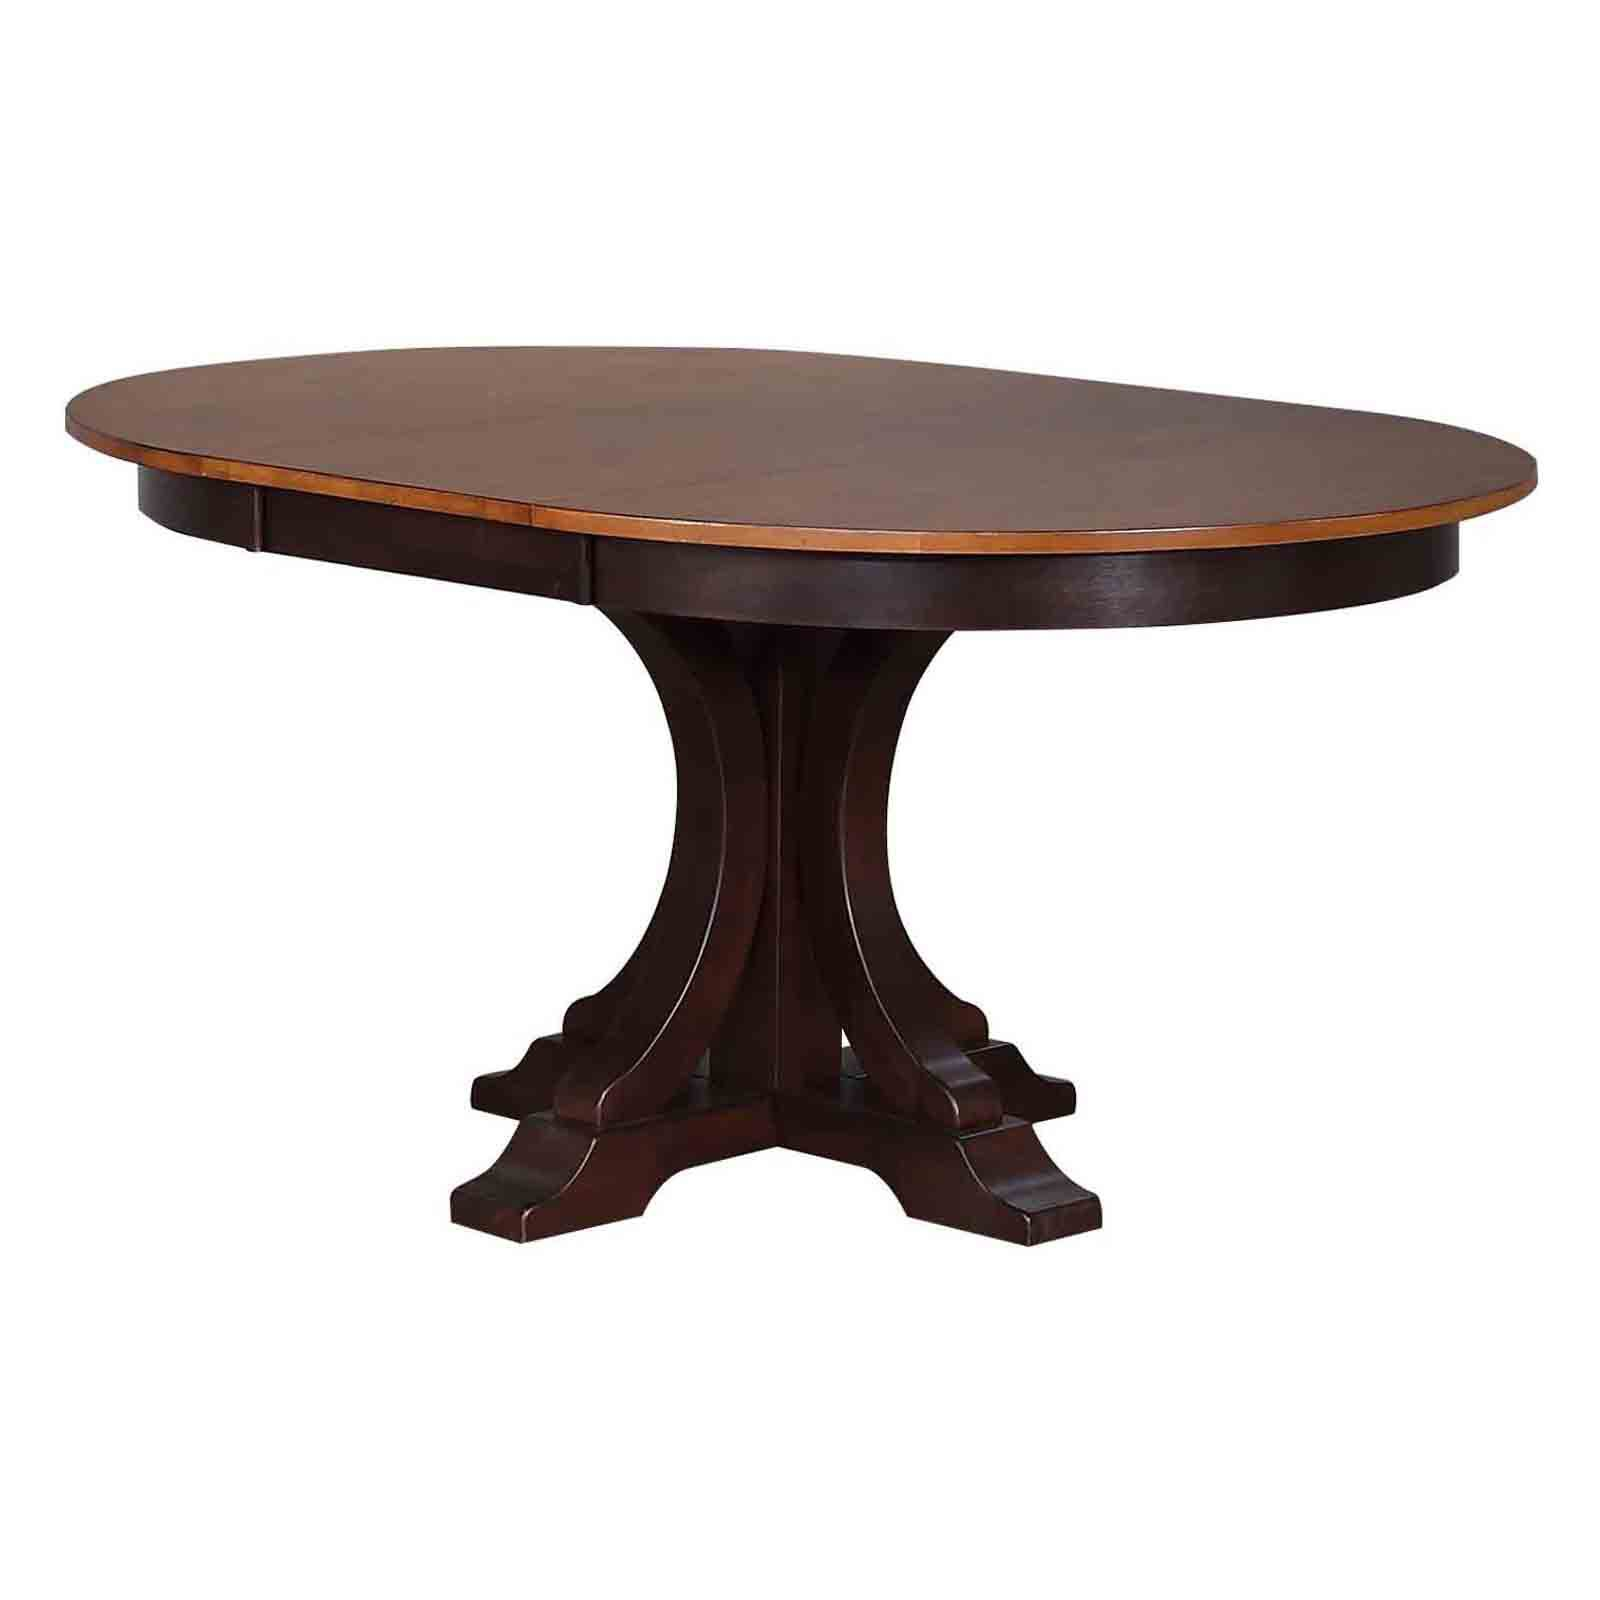 Iconic Furniture Deco 45 In. Round Dining Table With Extension Leaf